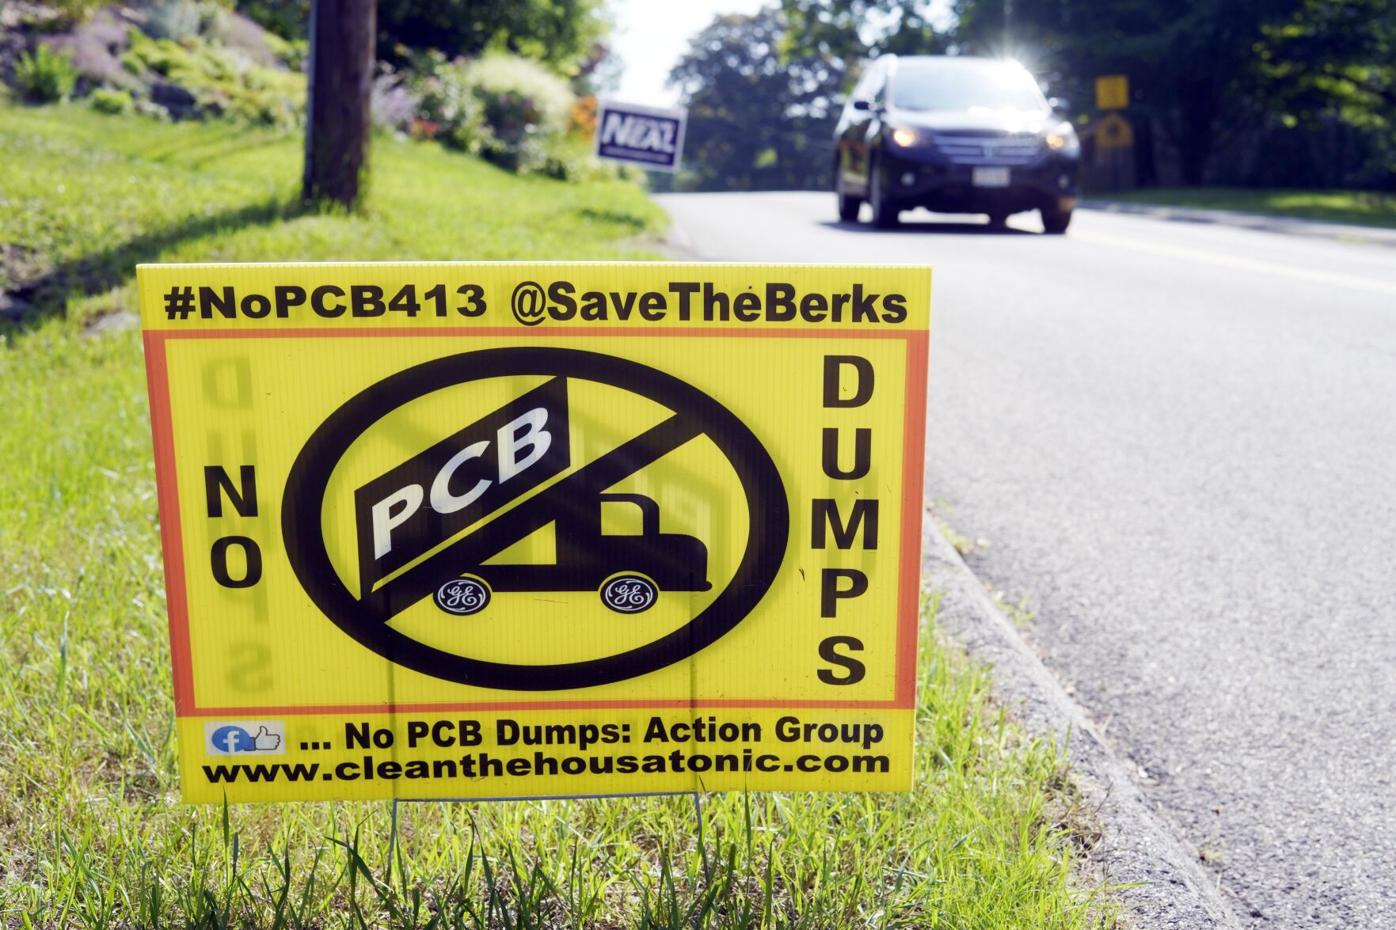 A lawn sign opposing a PCB dump site (copy)